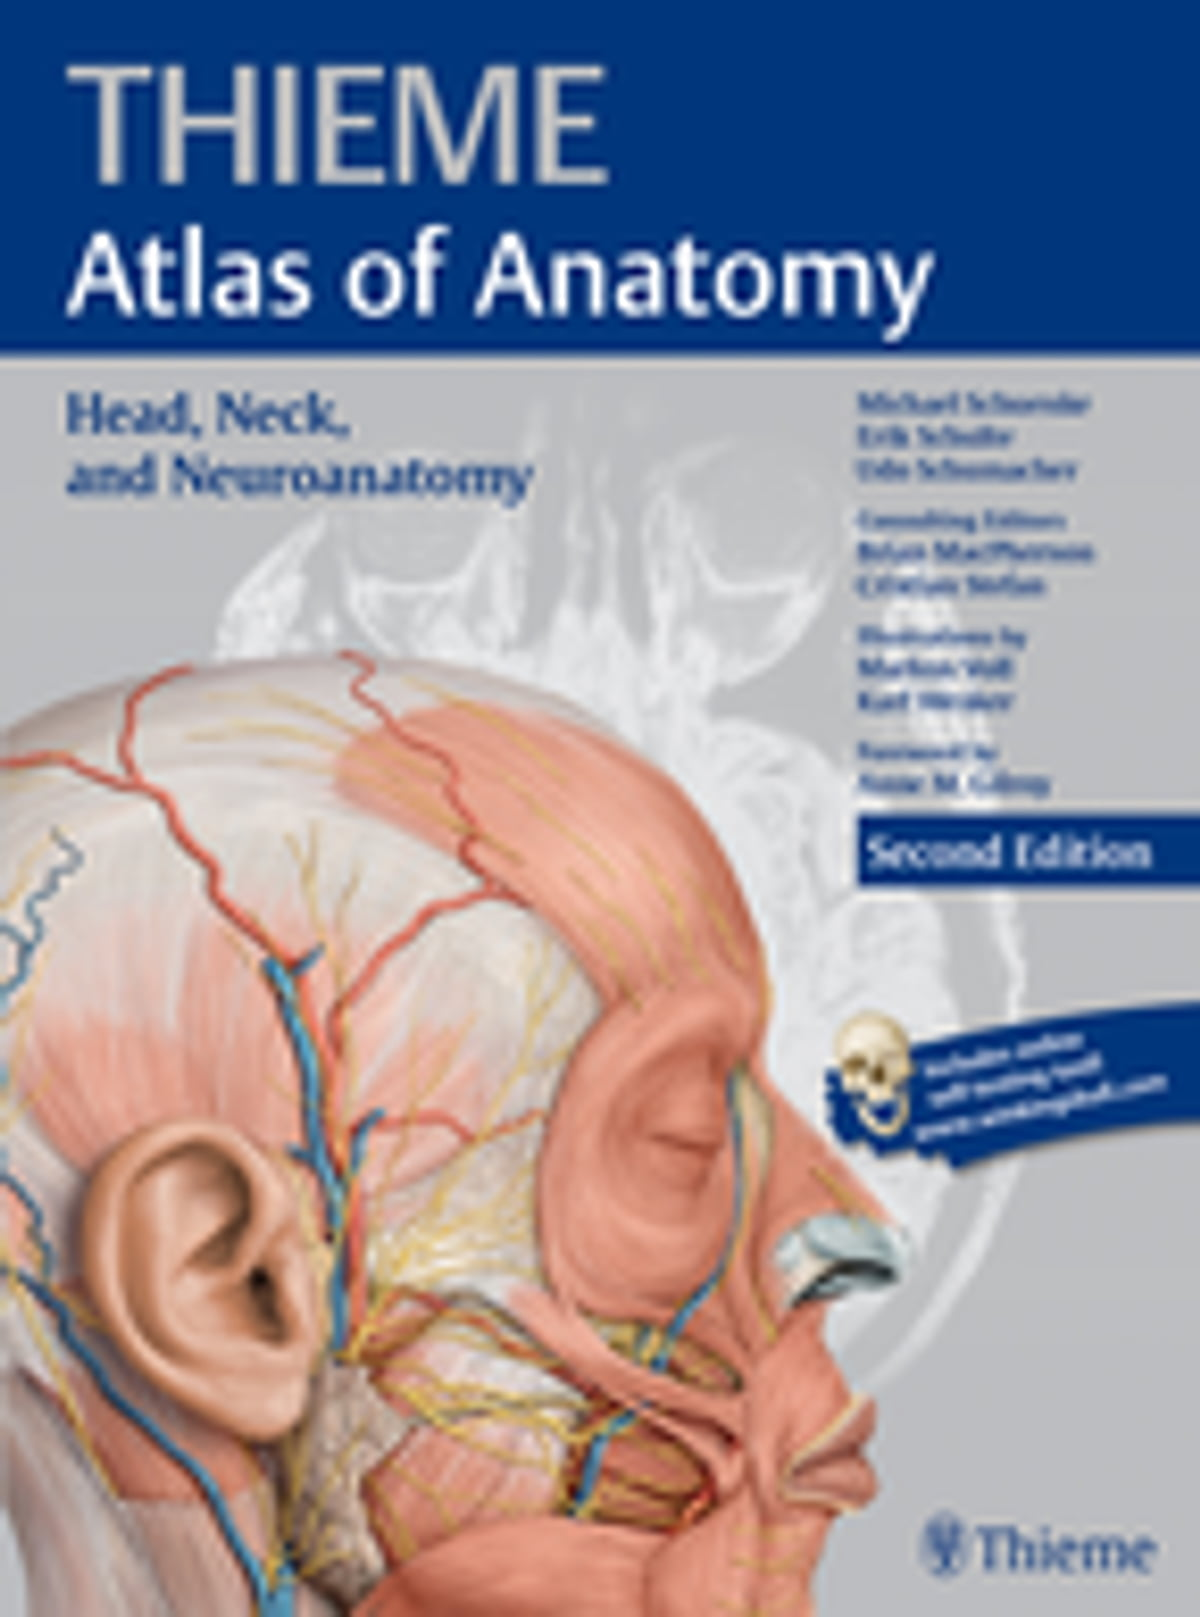 Head Neck And Neuroanatomy Thieme Atlas Of Anatomy Ebook By